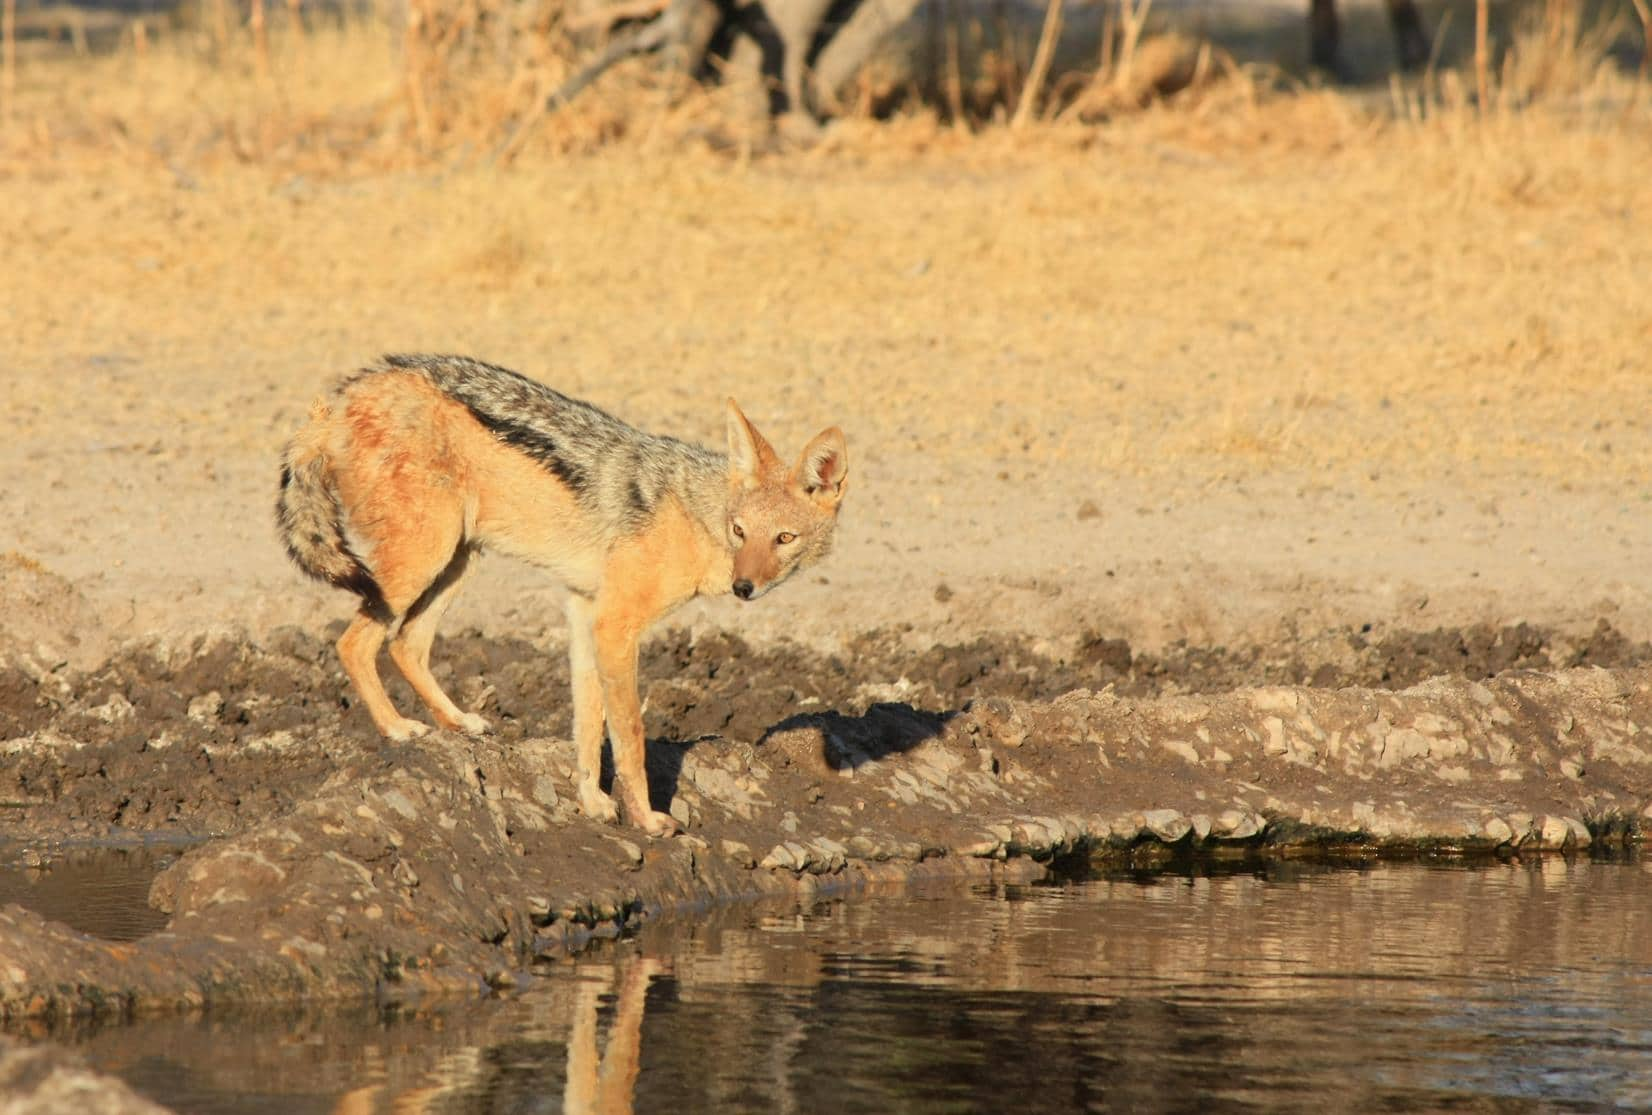 A jackal coming to drink at Sunday Pan waterhole.